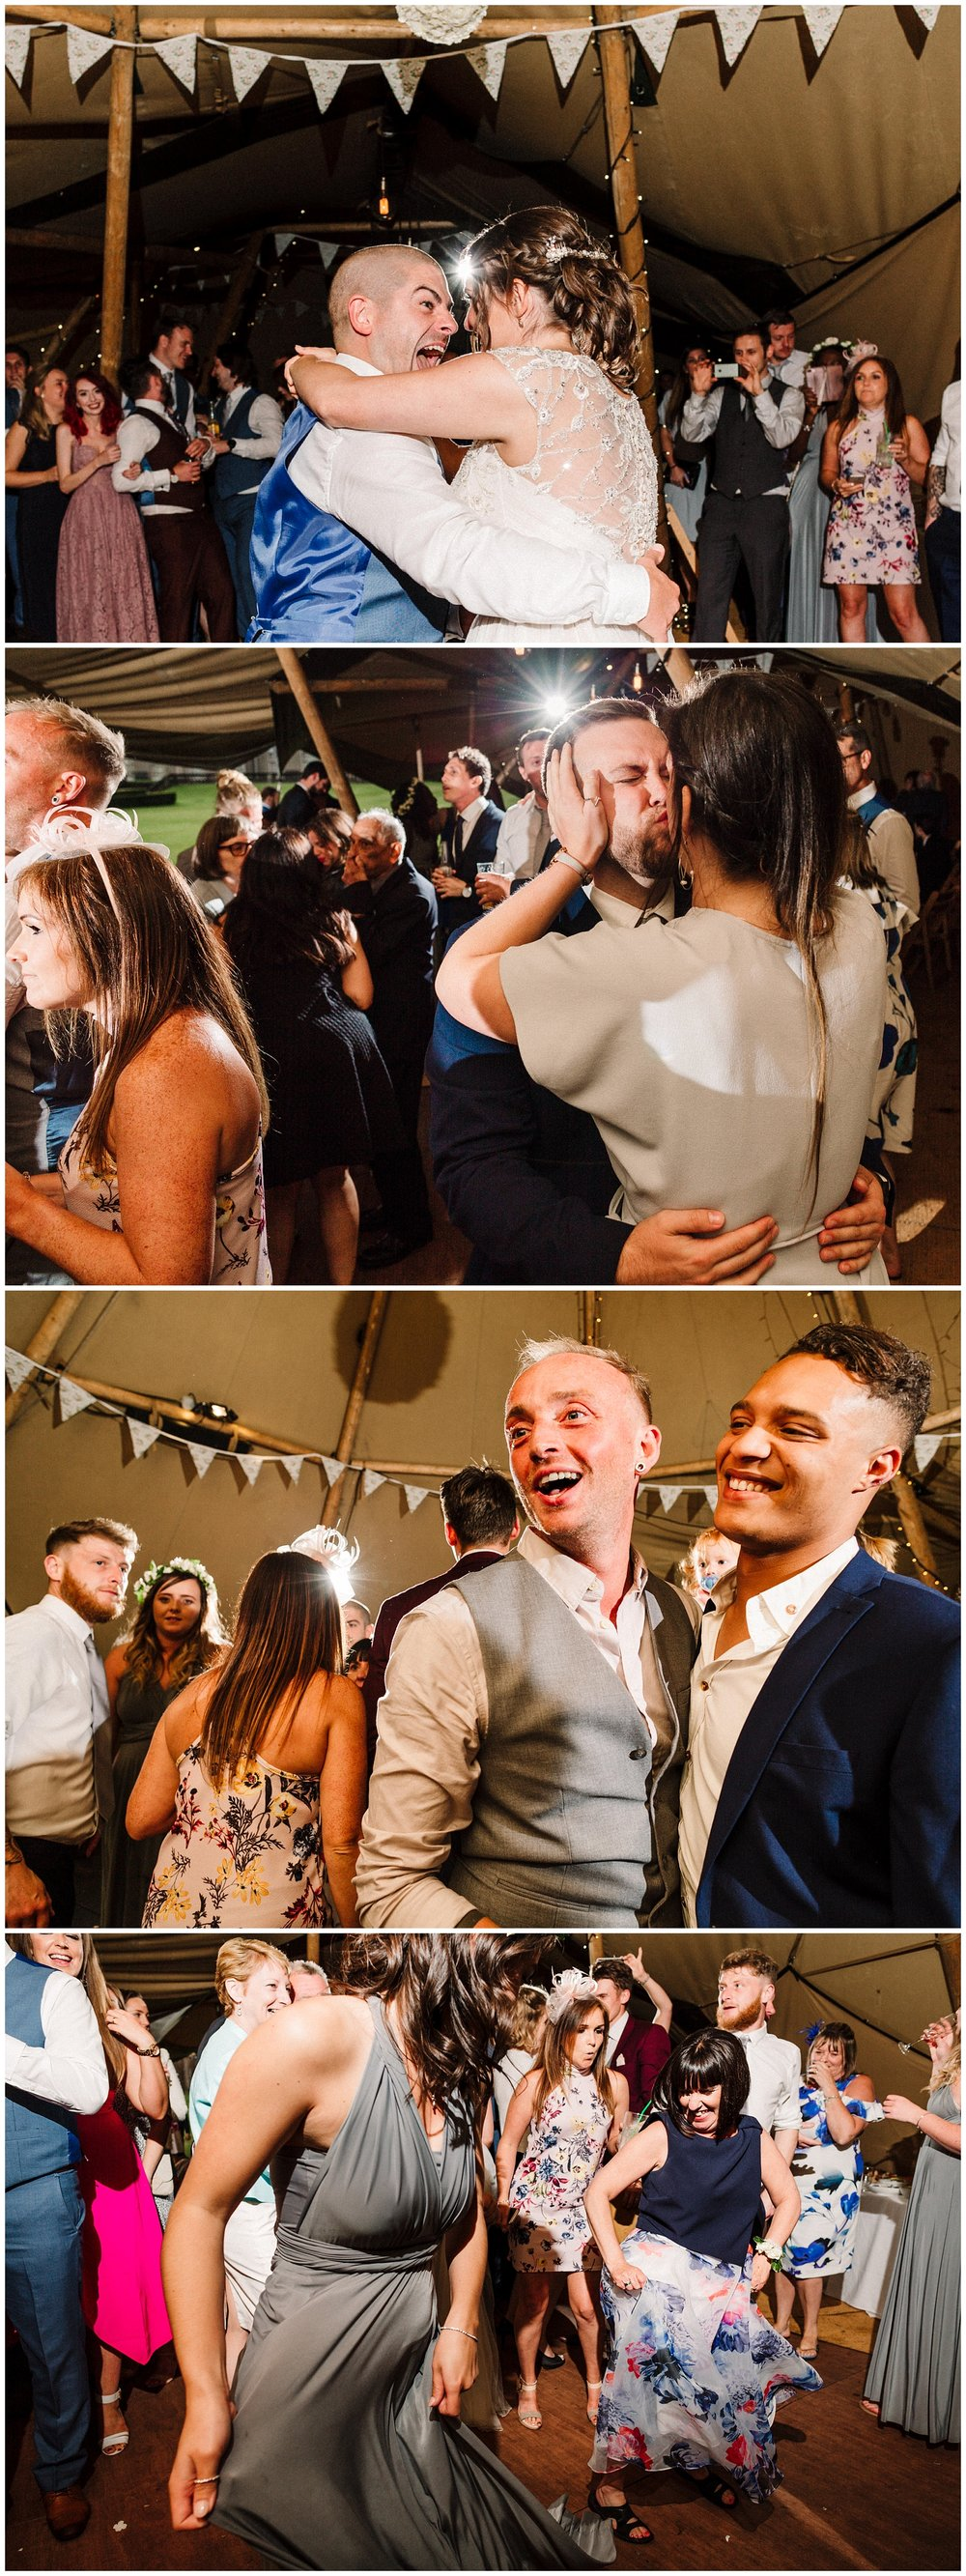 guests on a wedding dancefloor in a tipi